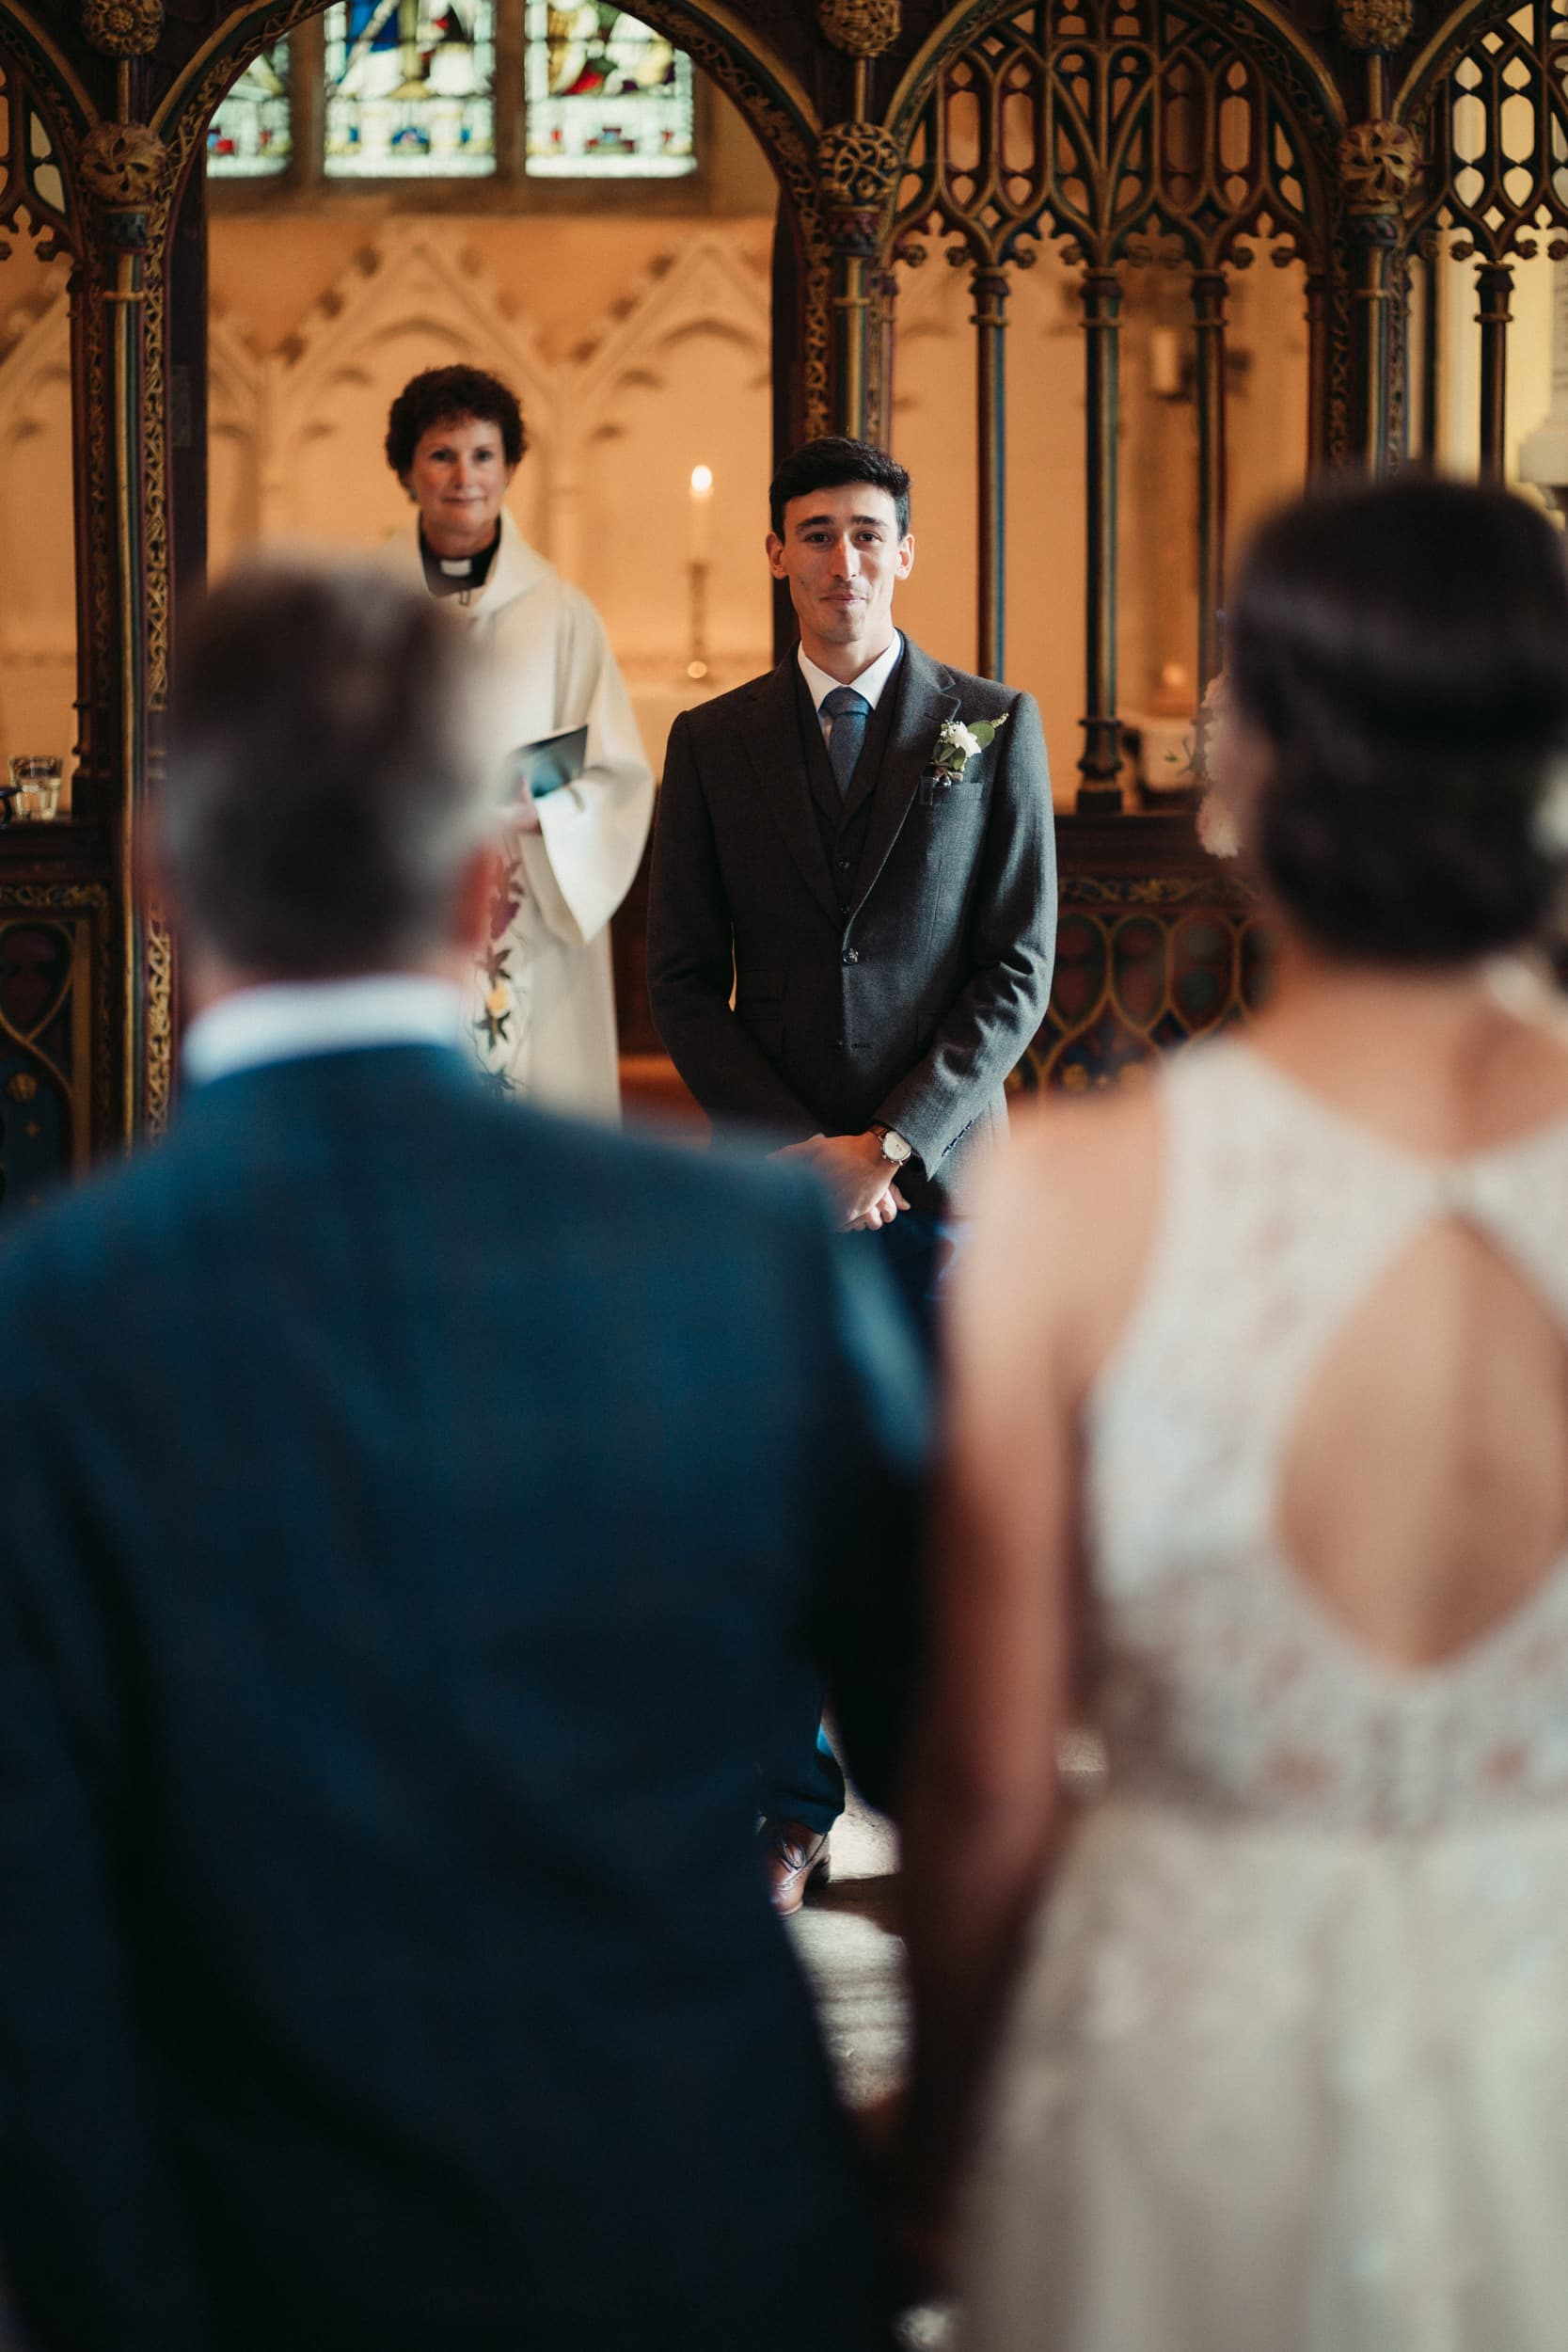 groom watching bride to be walking down the aisle towards him